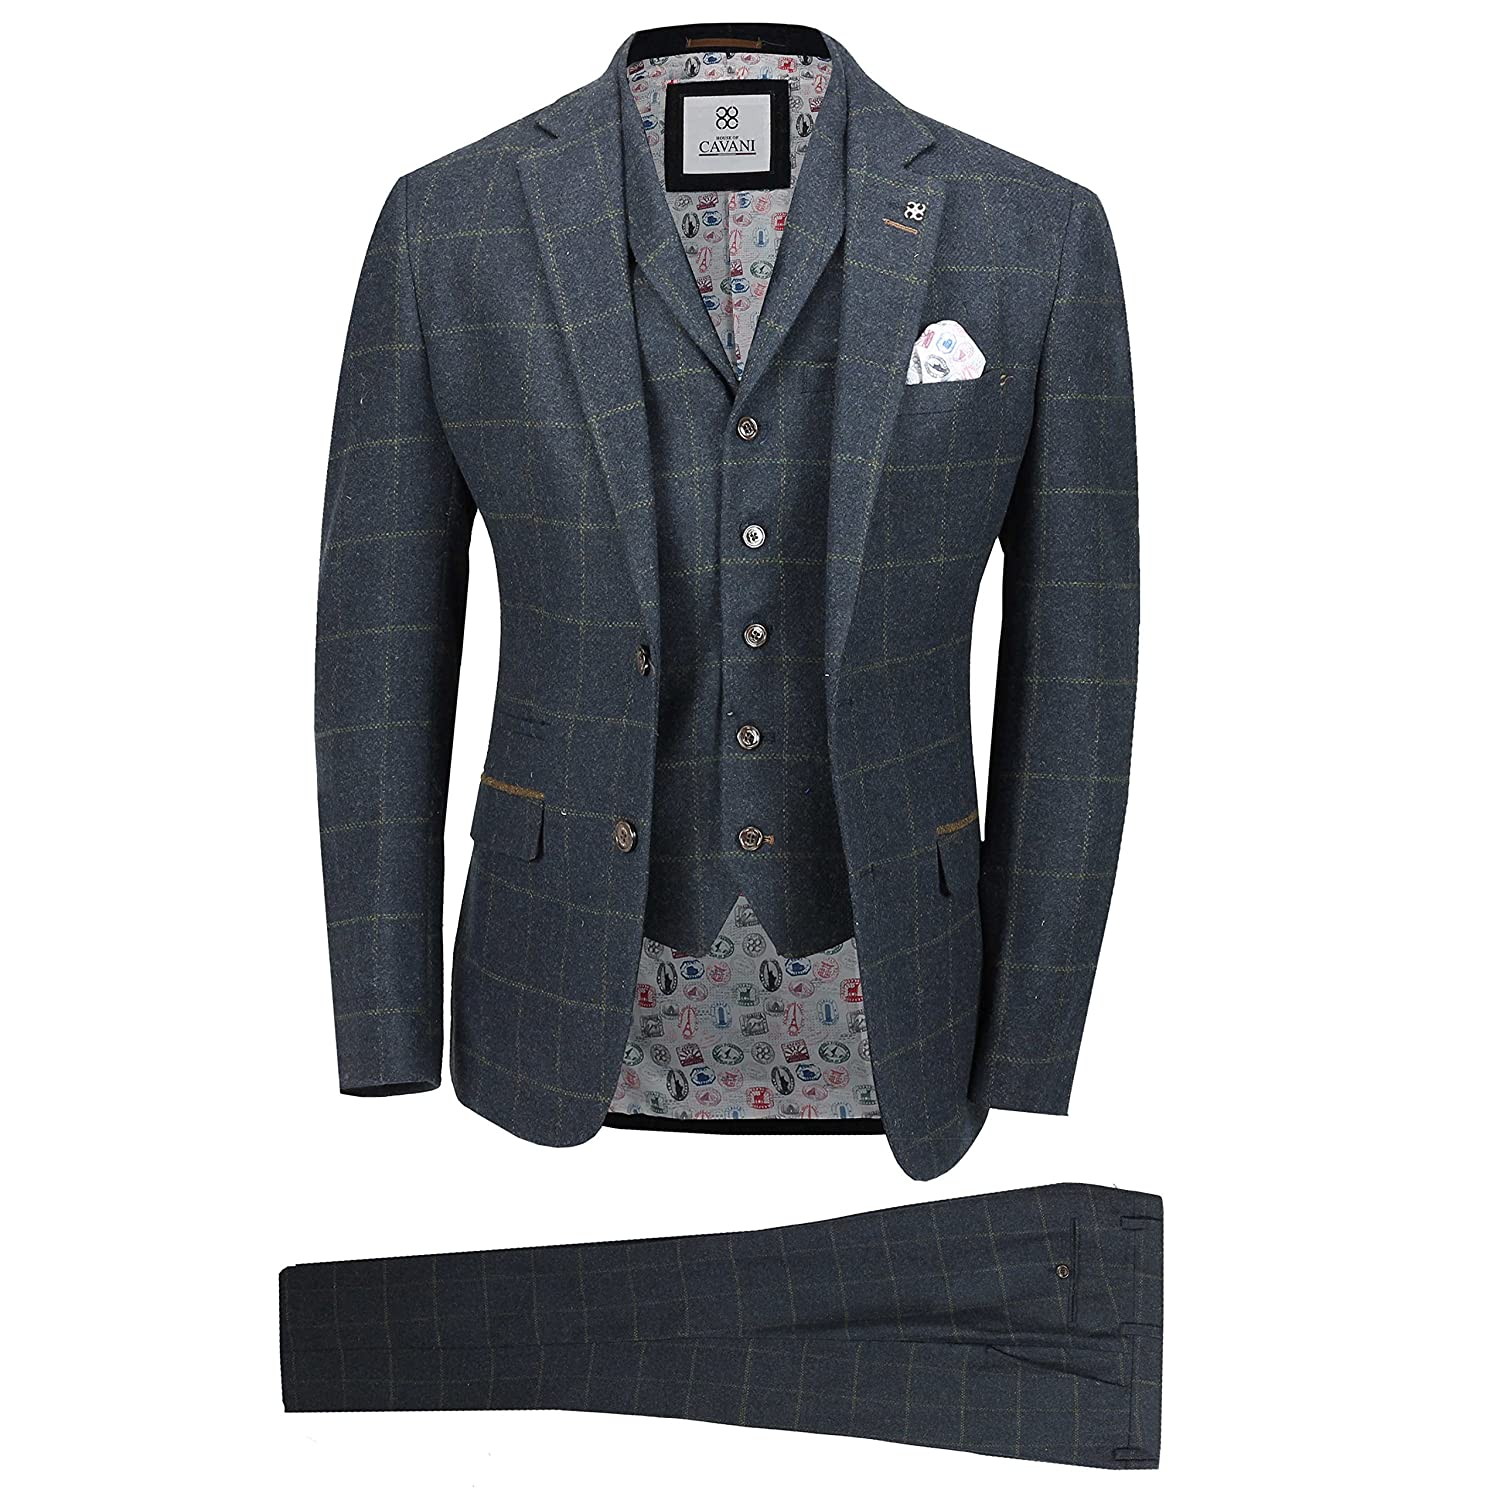 Cavani Mens 3 Piece Wool Suit Navy Vintage Tweed Check Retro Peaky Blinder Smart Tailored Fit Jacket